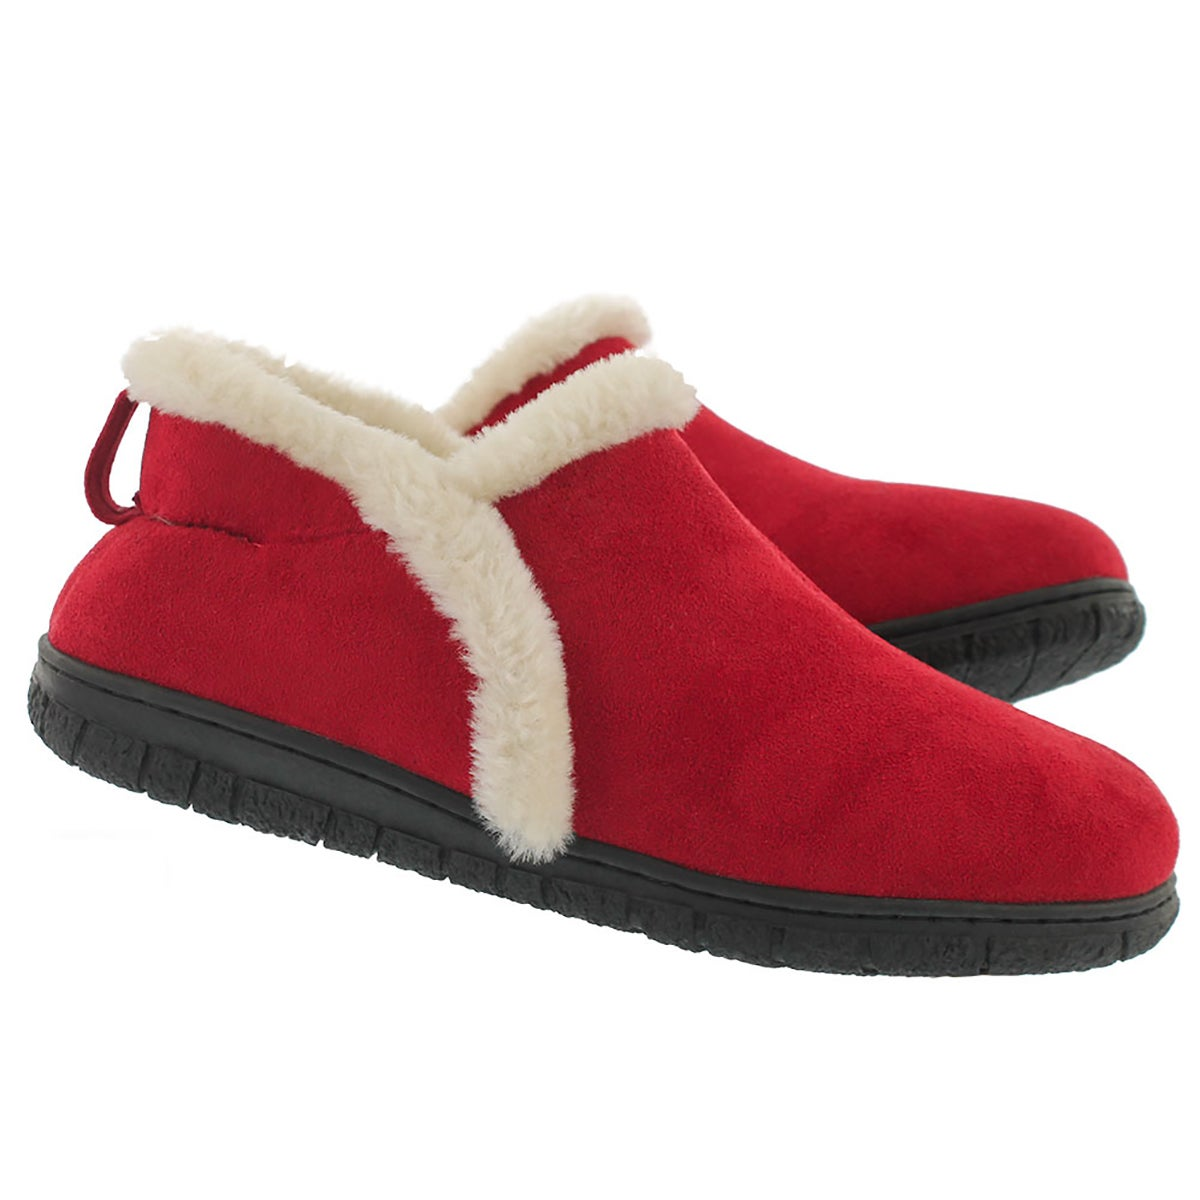 Lds Rachel red mem foam clsd bck slipper